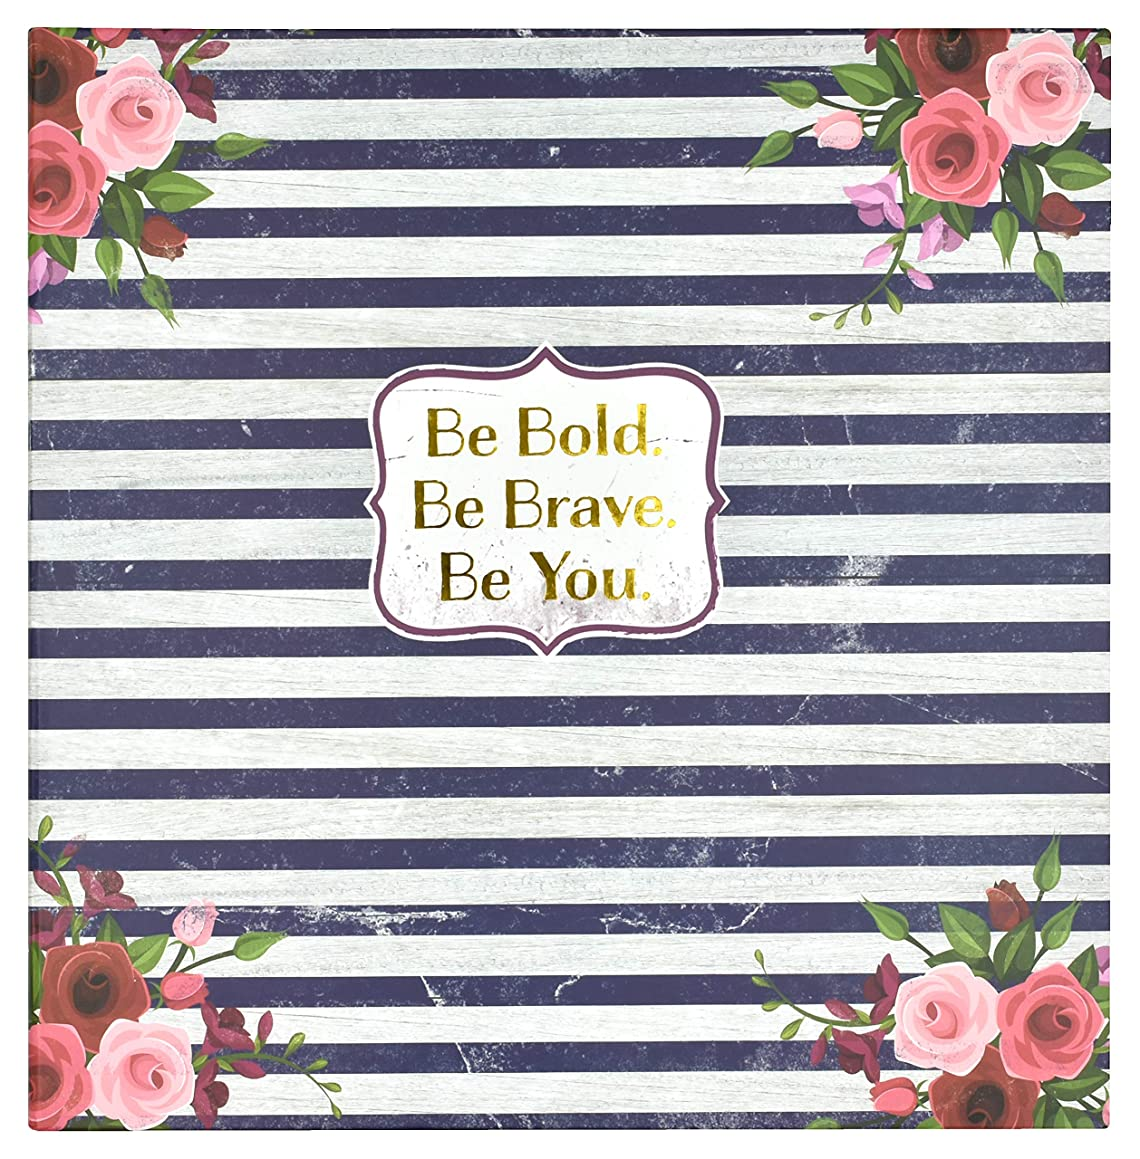 MCS MBI 860164 Be Be Bold Floral & Striped Photo Album, 13x13 Inch, Navy